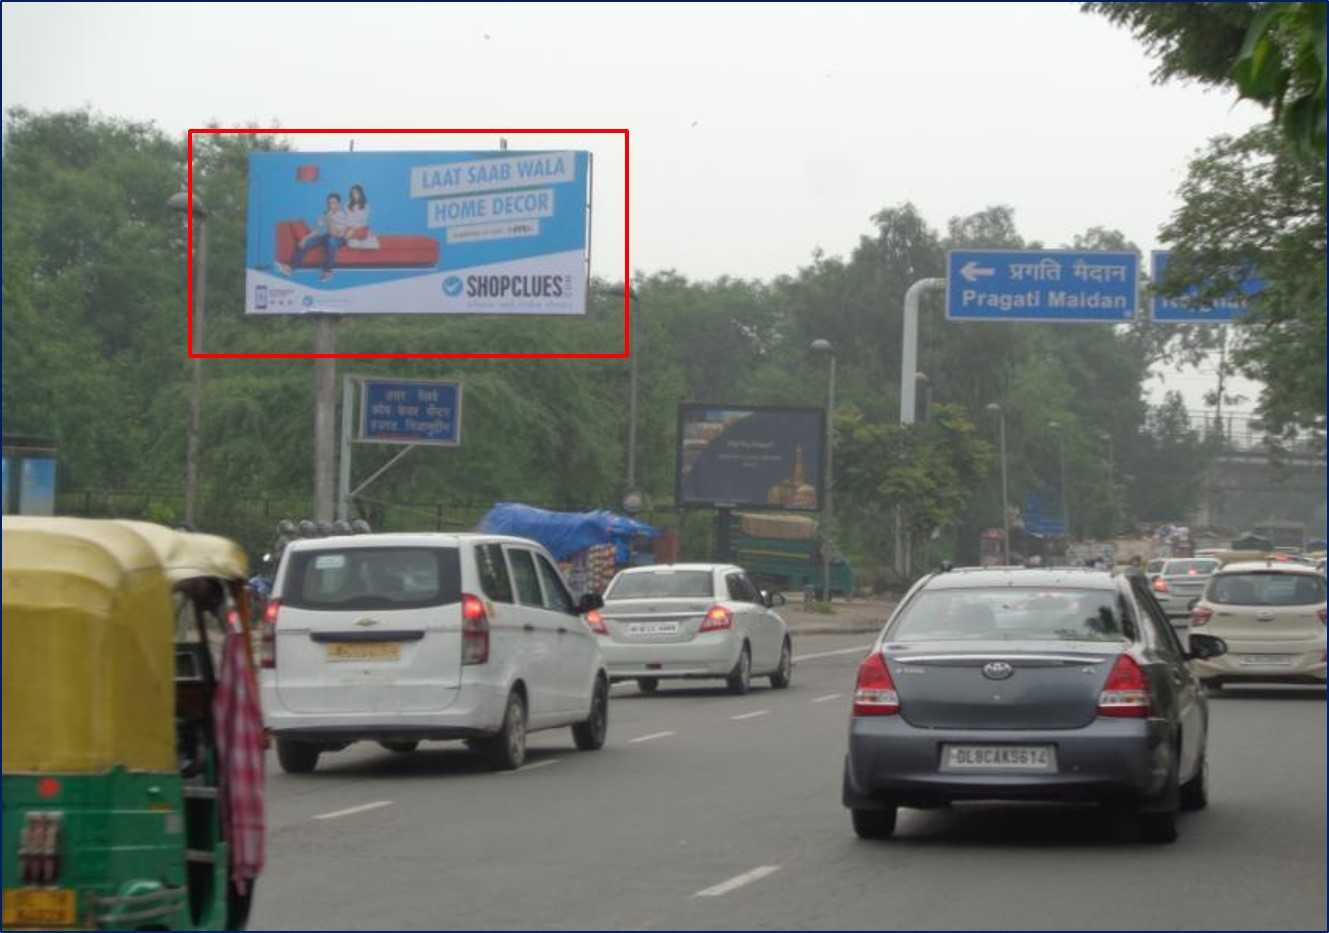 UNIPOLE BEFORE BHAIRAV MARG RED LIGHT  RING ROAD, NEW DELHI